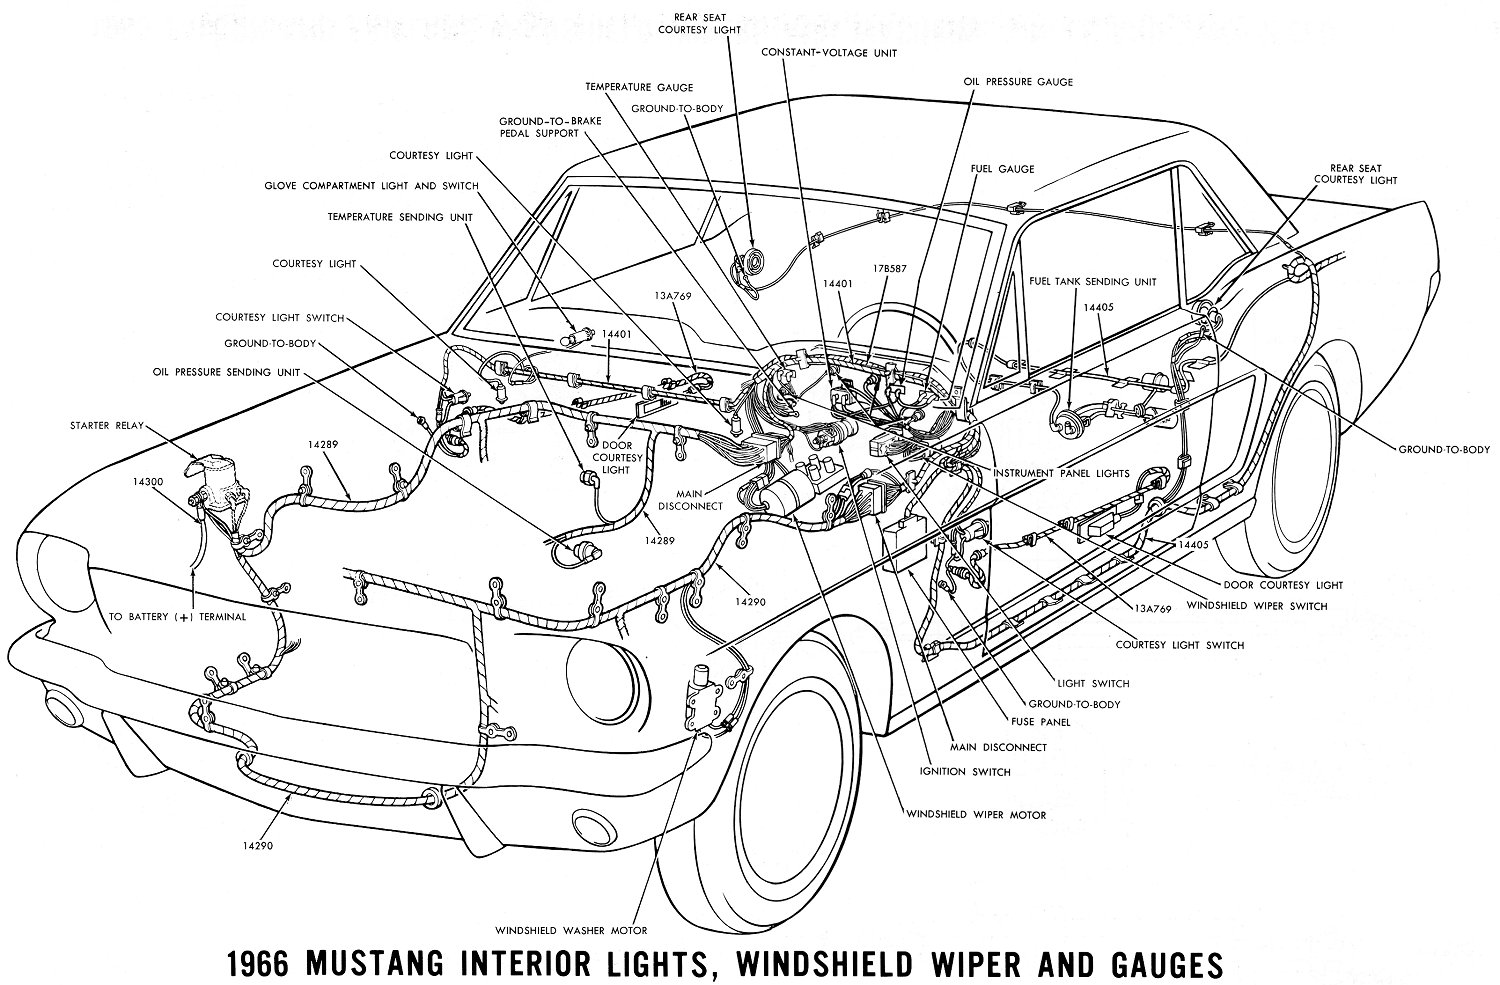 66inter 1966 mustang wiring diagrams average joe restoration 1968 mustang alternator wiring diagram at webbmarketing.co